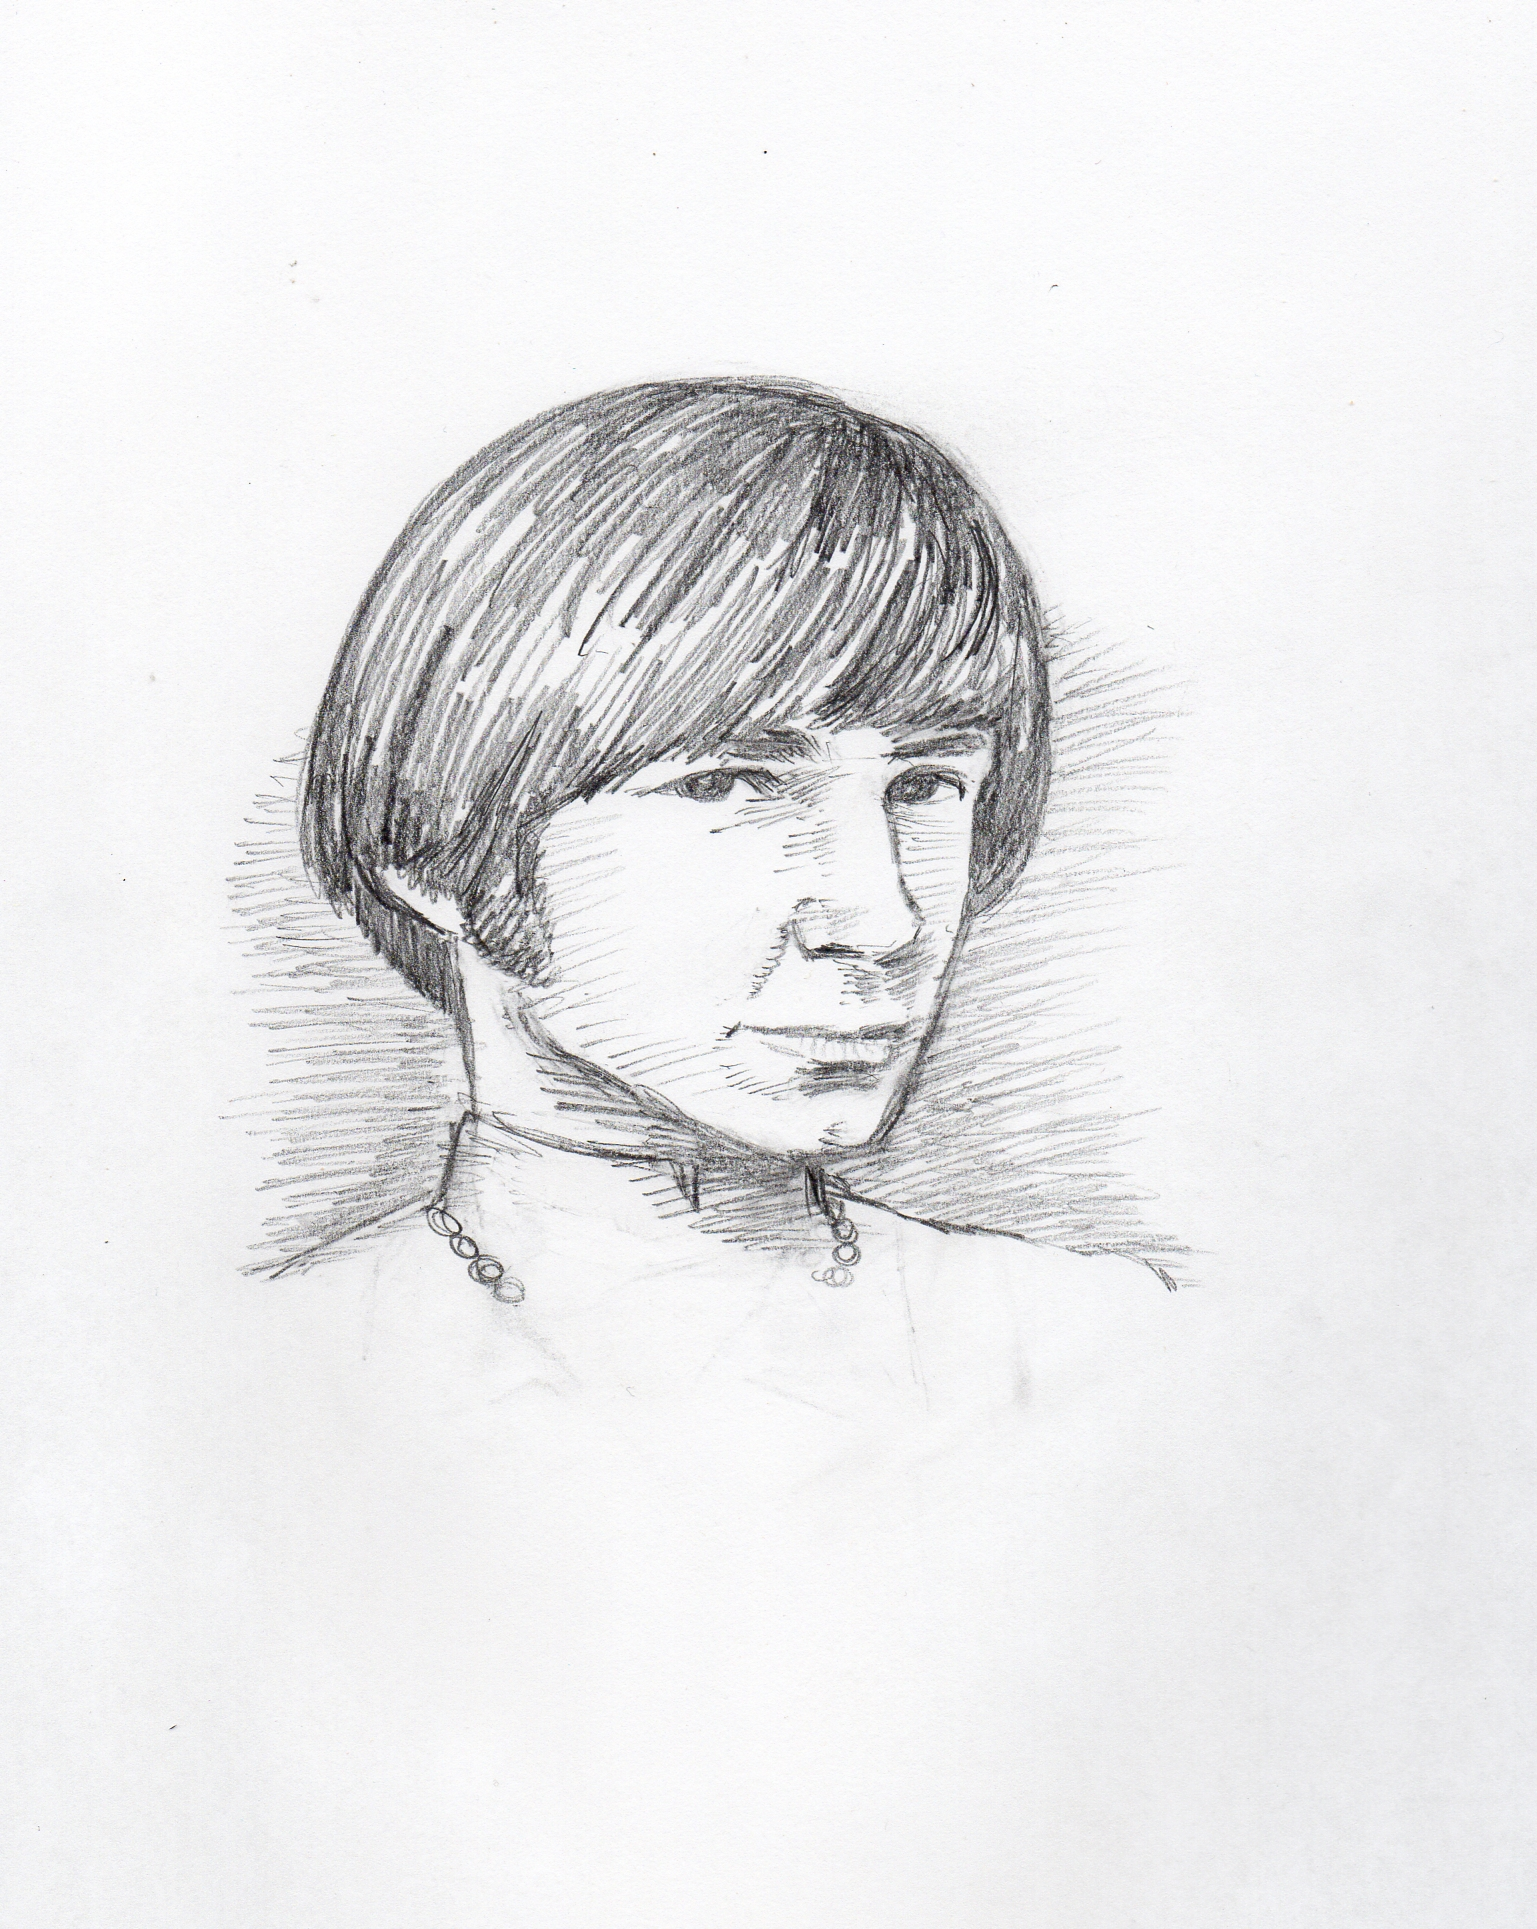 $225, Peter Tork of the Monkees for GZD